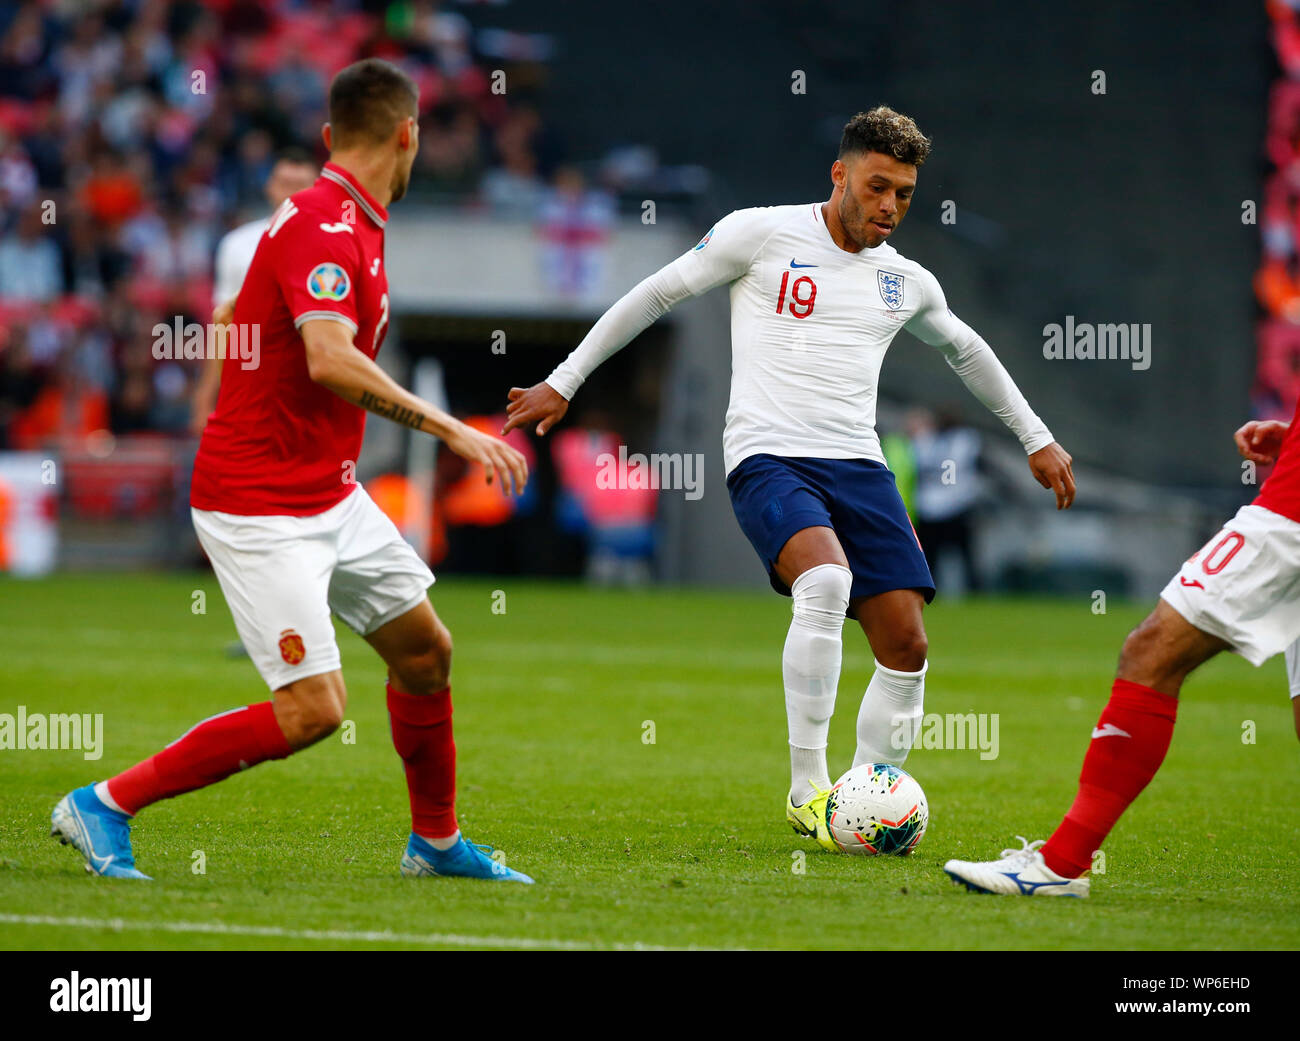 London, UK. 07th Sep, 2019. LONDON, ENGLAND. SEPTEMBER 07: Alex Oxlade-Chamberlain during UEFA Euro 2020 Qualifier between England and Bulgaria at Wembley stadium in London, England on September 07, 2019 Credit: Action Foto Sport/Alamy Live News Stock Photo